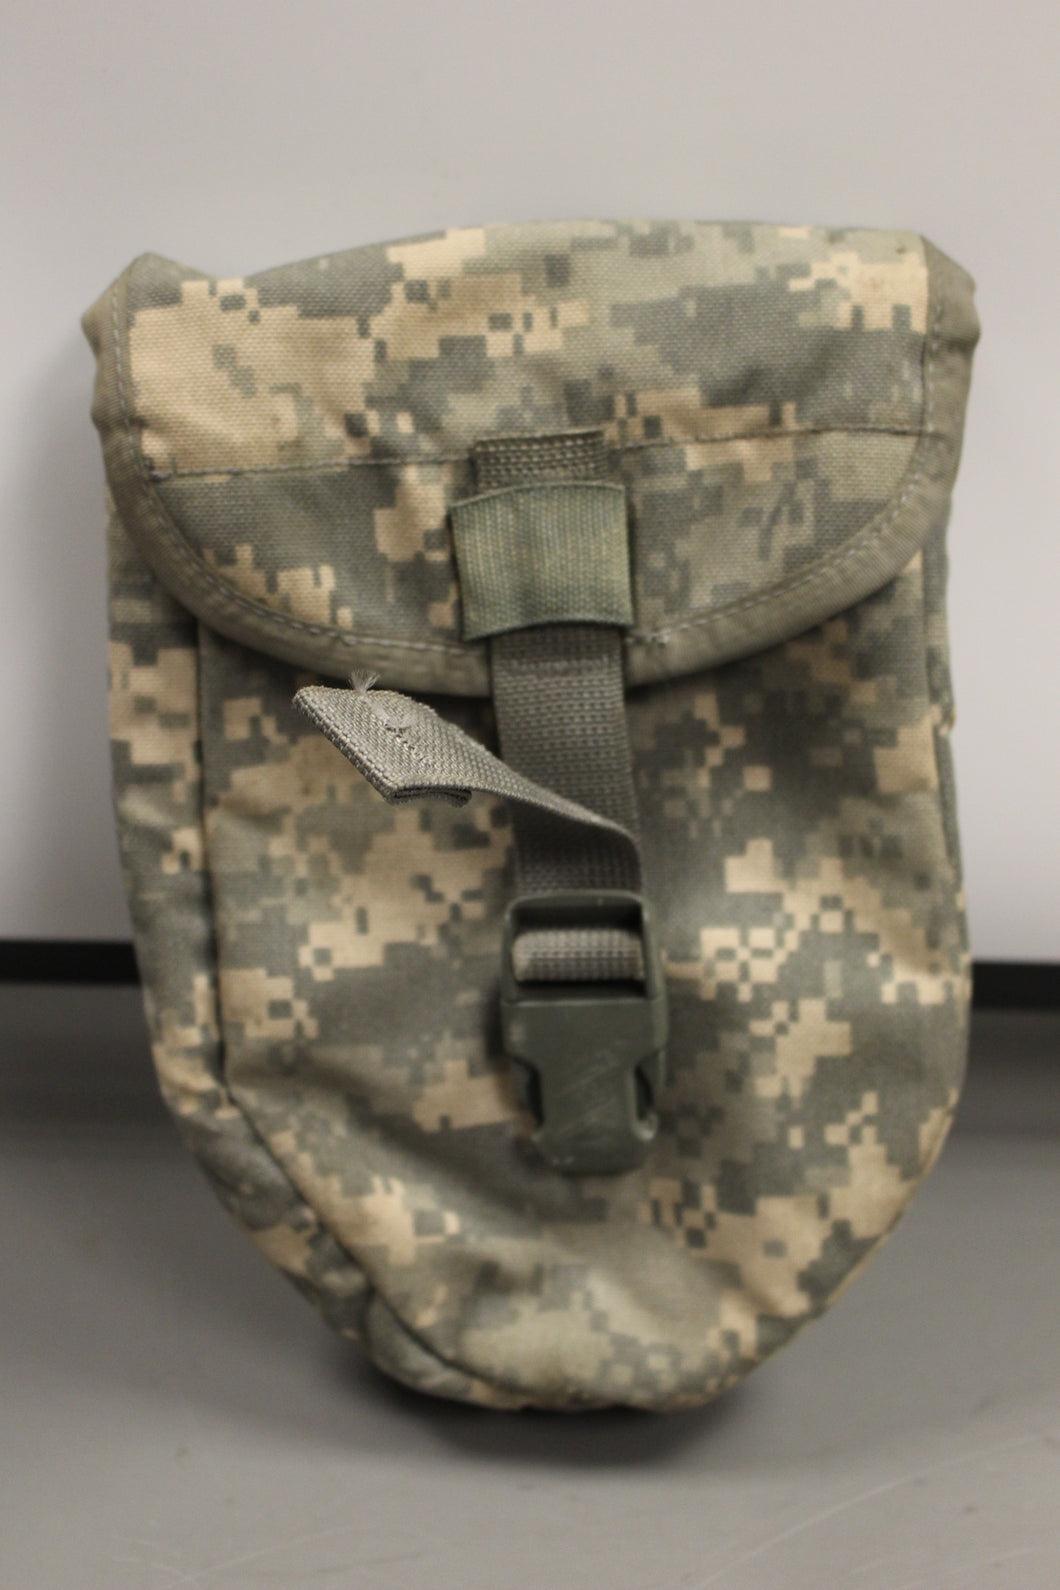 Molle II ACU ETool Entrenching Tool Carrier, 8465-01-524-8407